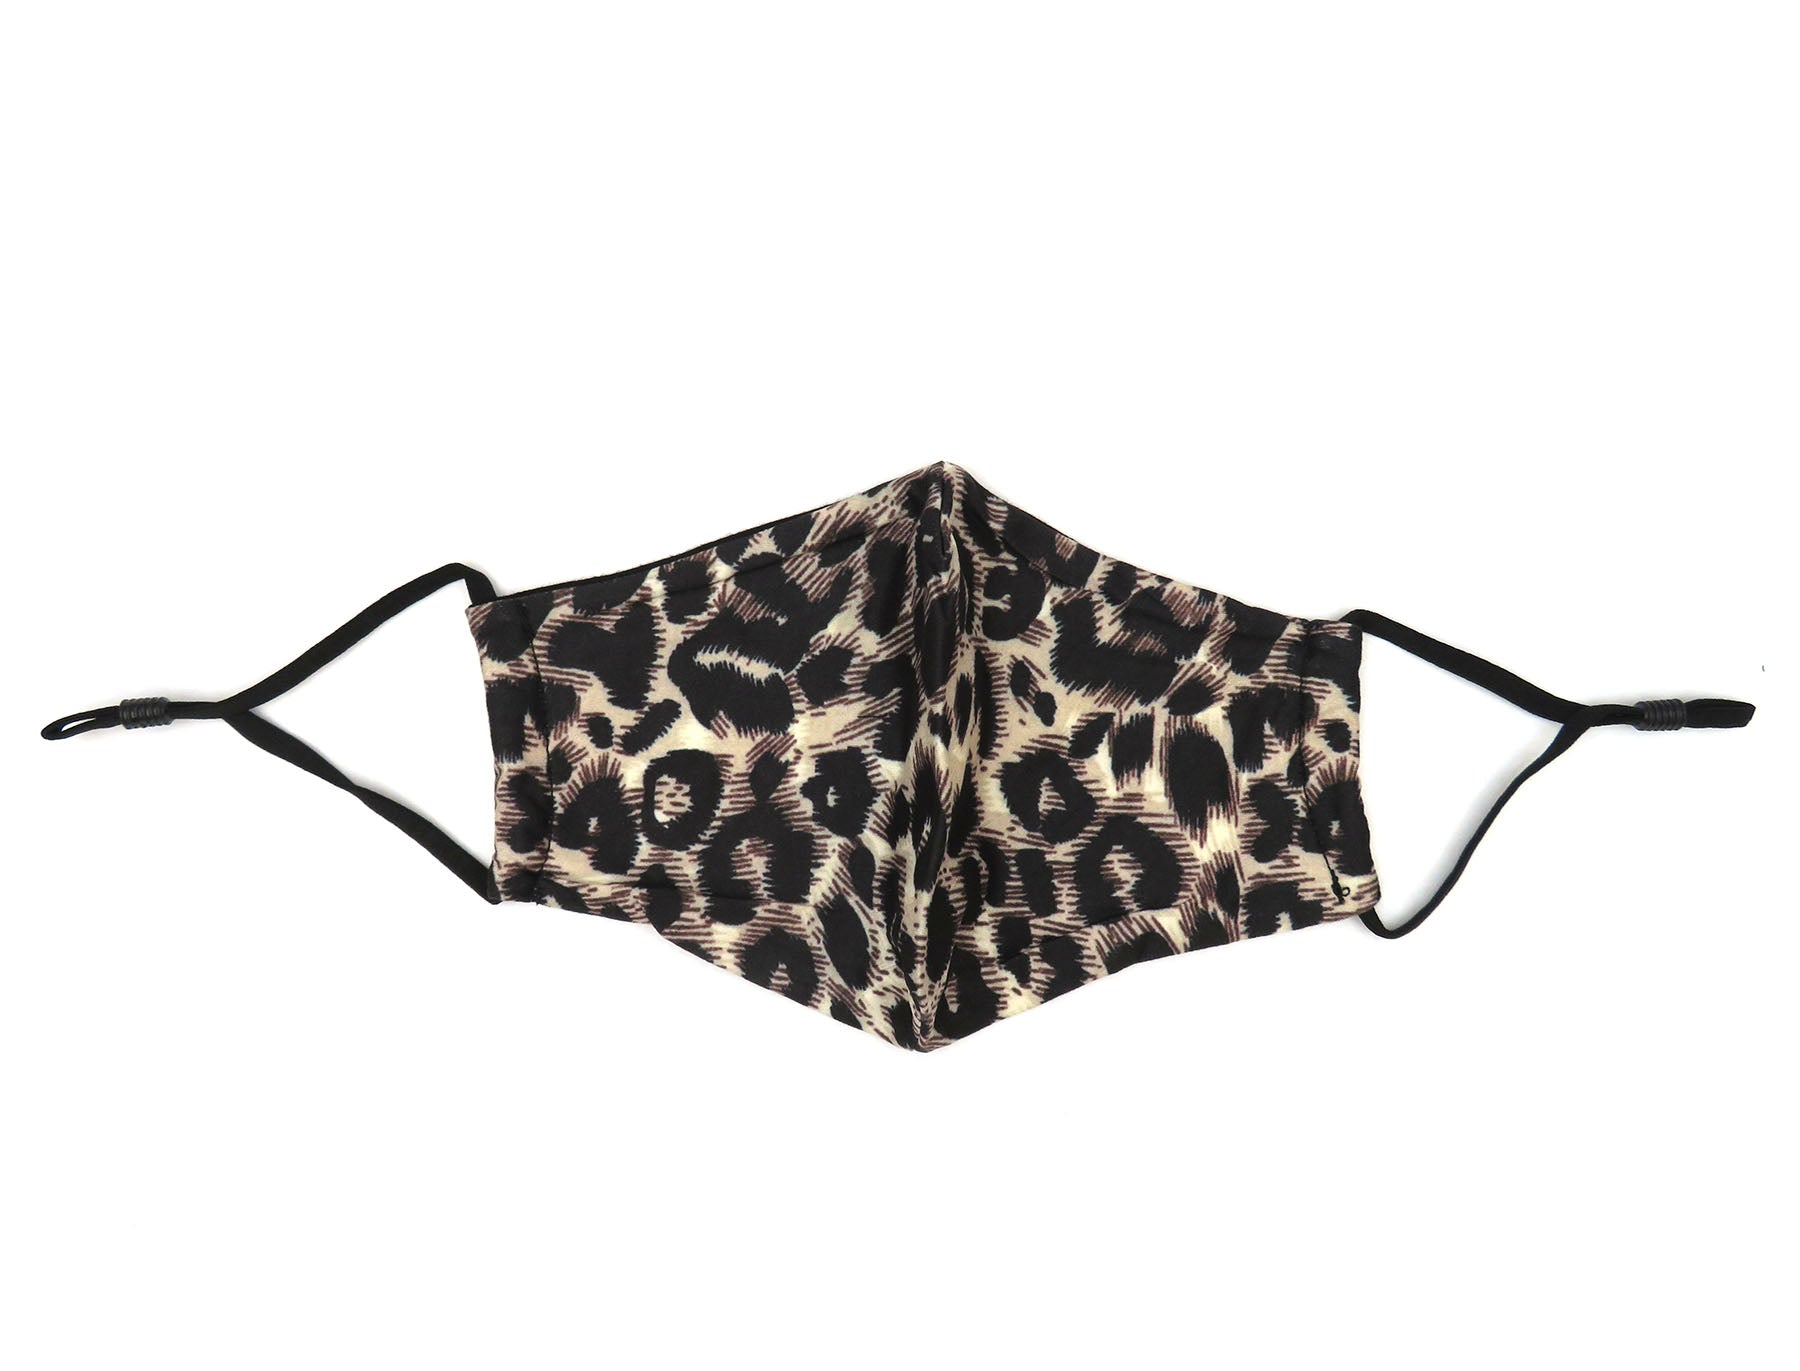 Leopard & Tropical Print Reusable Non-medical Fabric Face Covering Mask-Labor Day Special